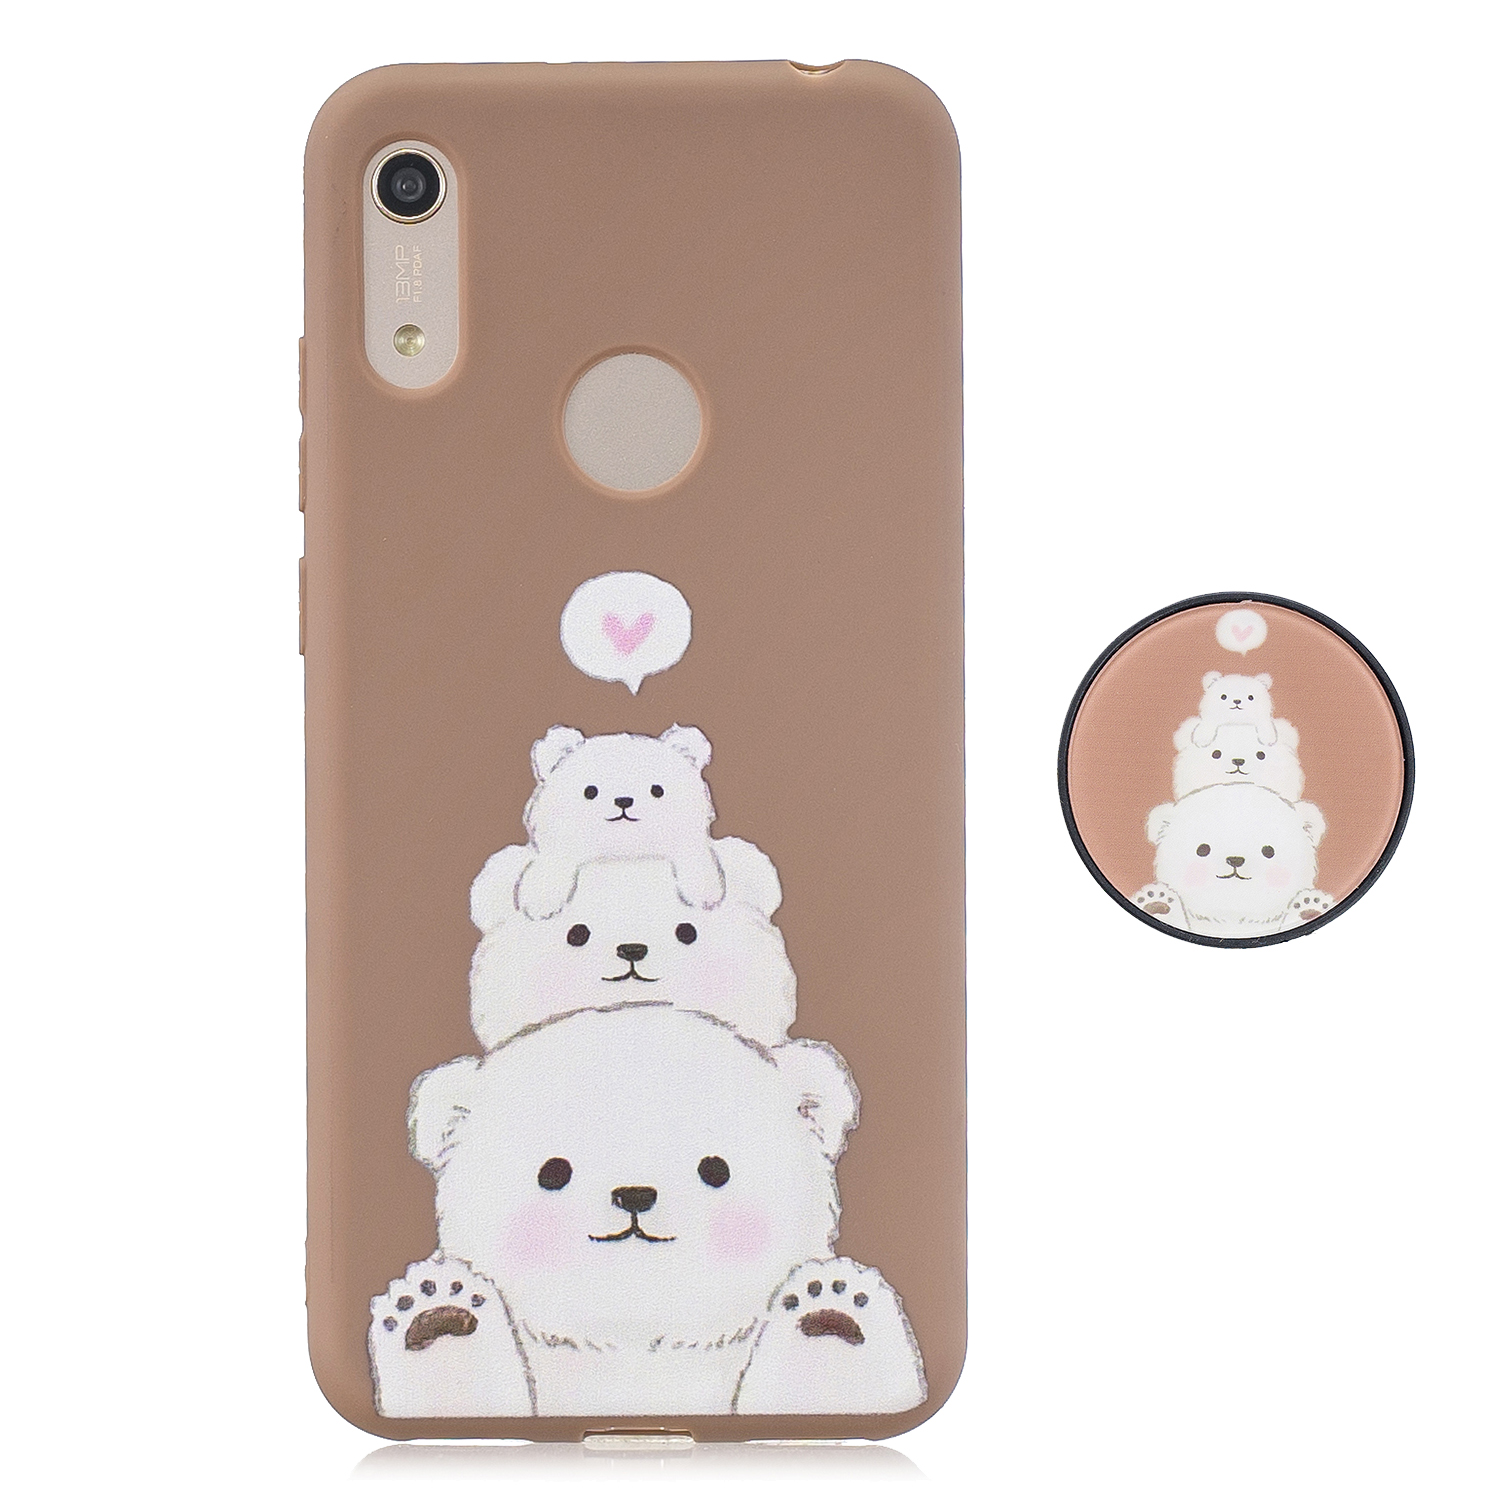 For HUAWEI Y6 2019 Flexible Stand Holder Case Soft TPU Full Cover Case Phone Cover Cute Phone Case 3